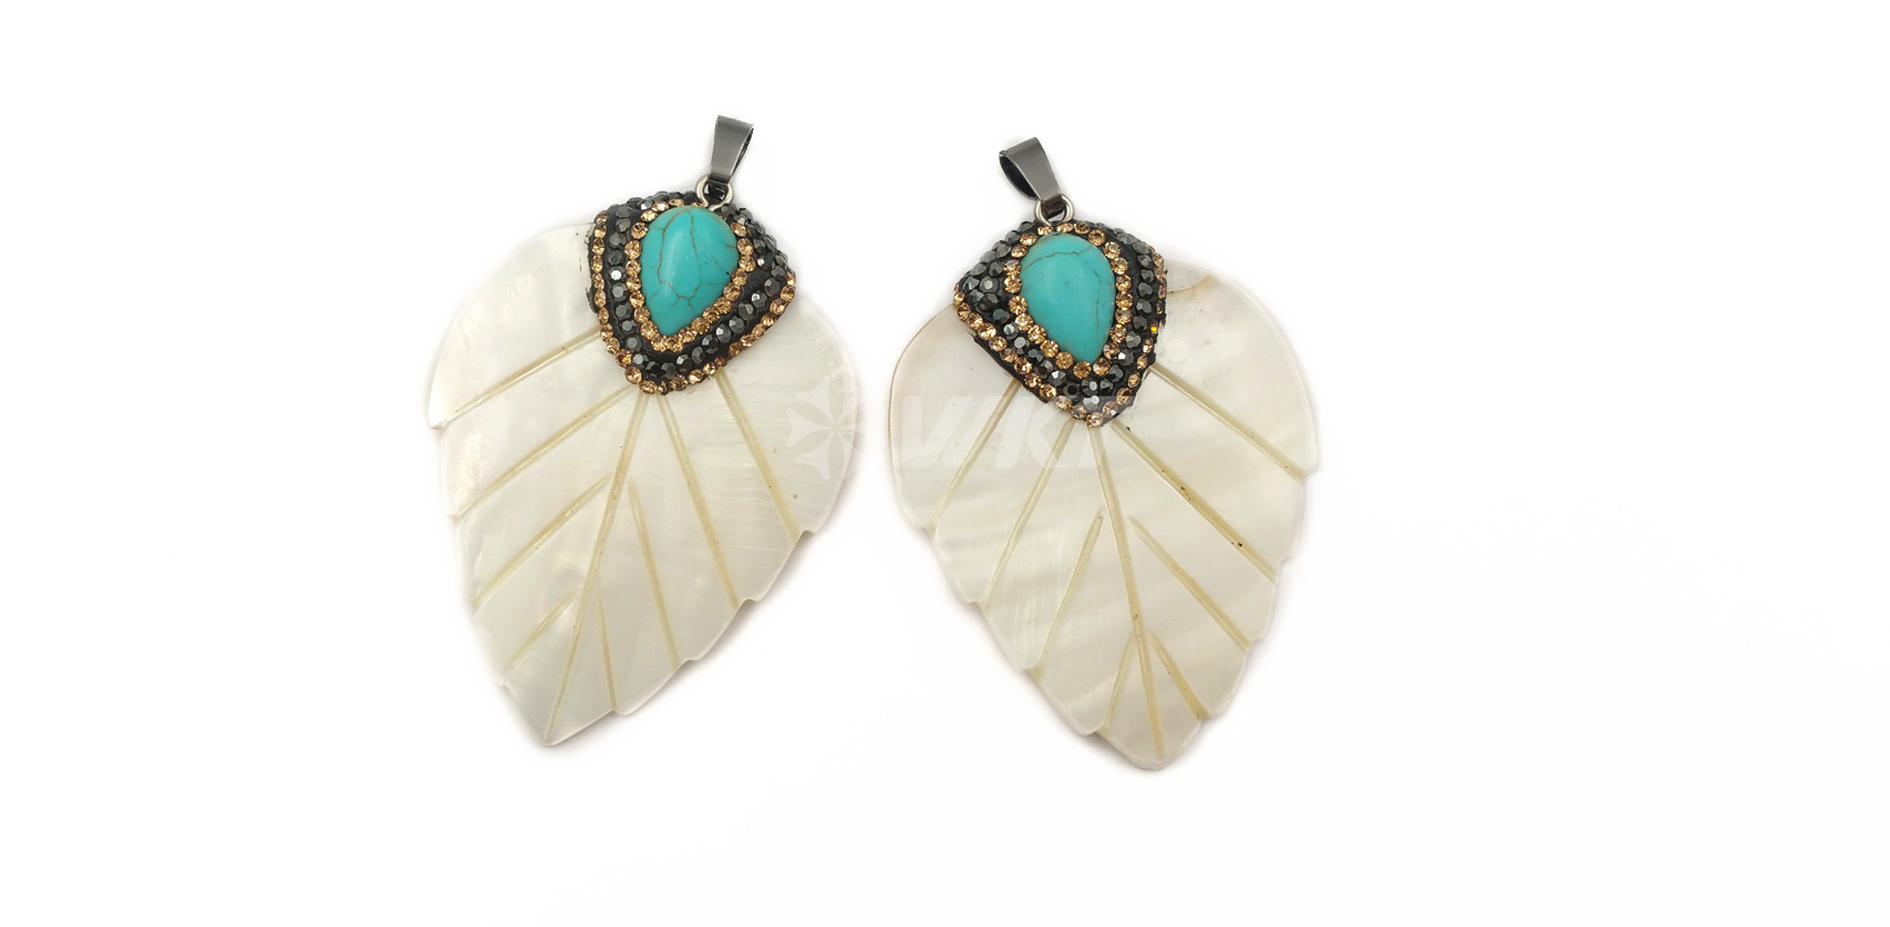 WT-NP381 Wholesale New design Rhinestone Crystal Pave around turquoise jewelry Leaf shape pendant natural white shell Pendant